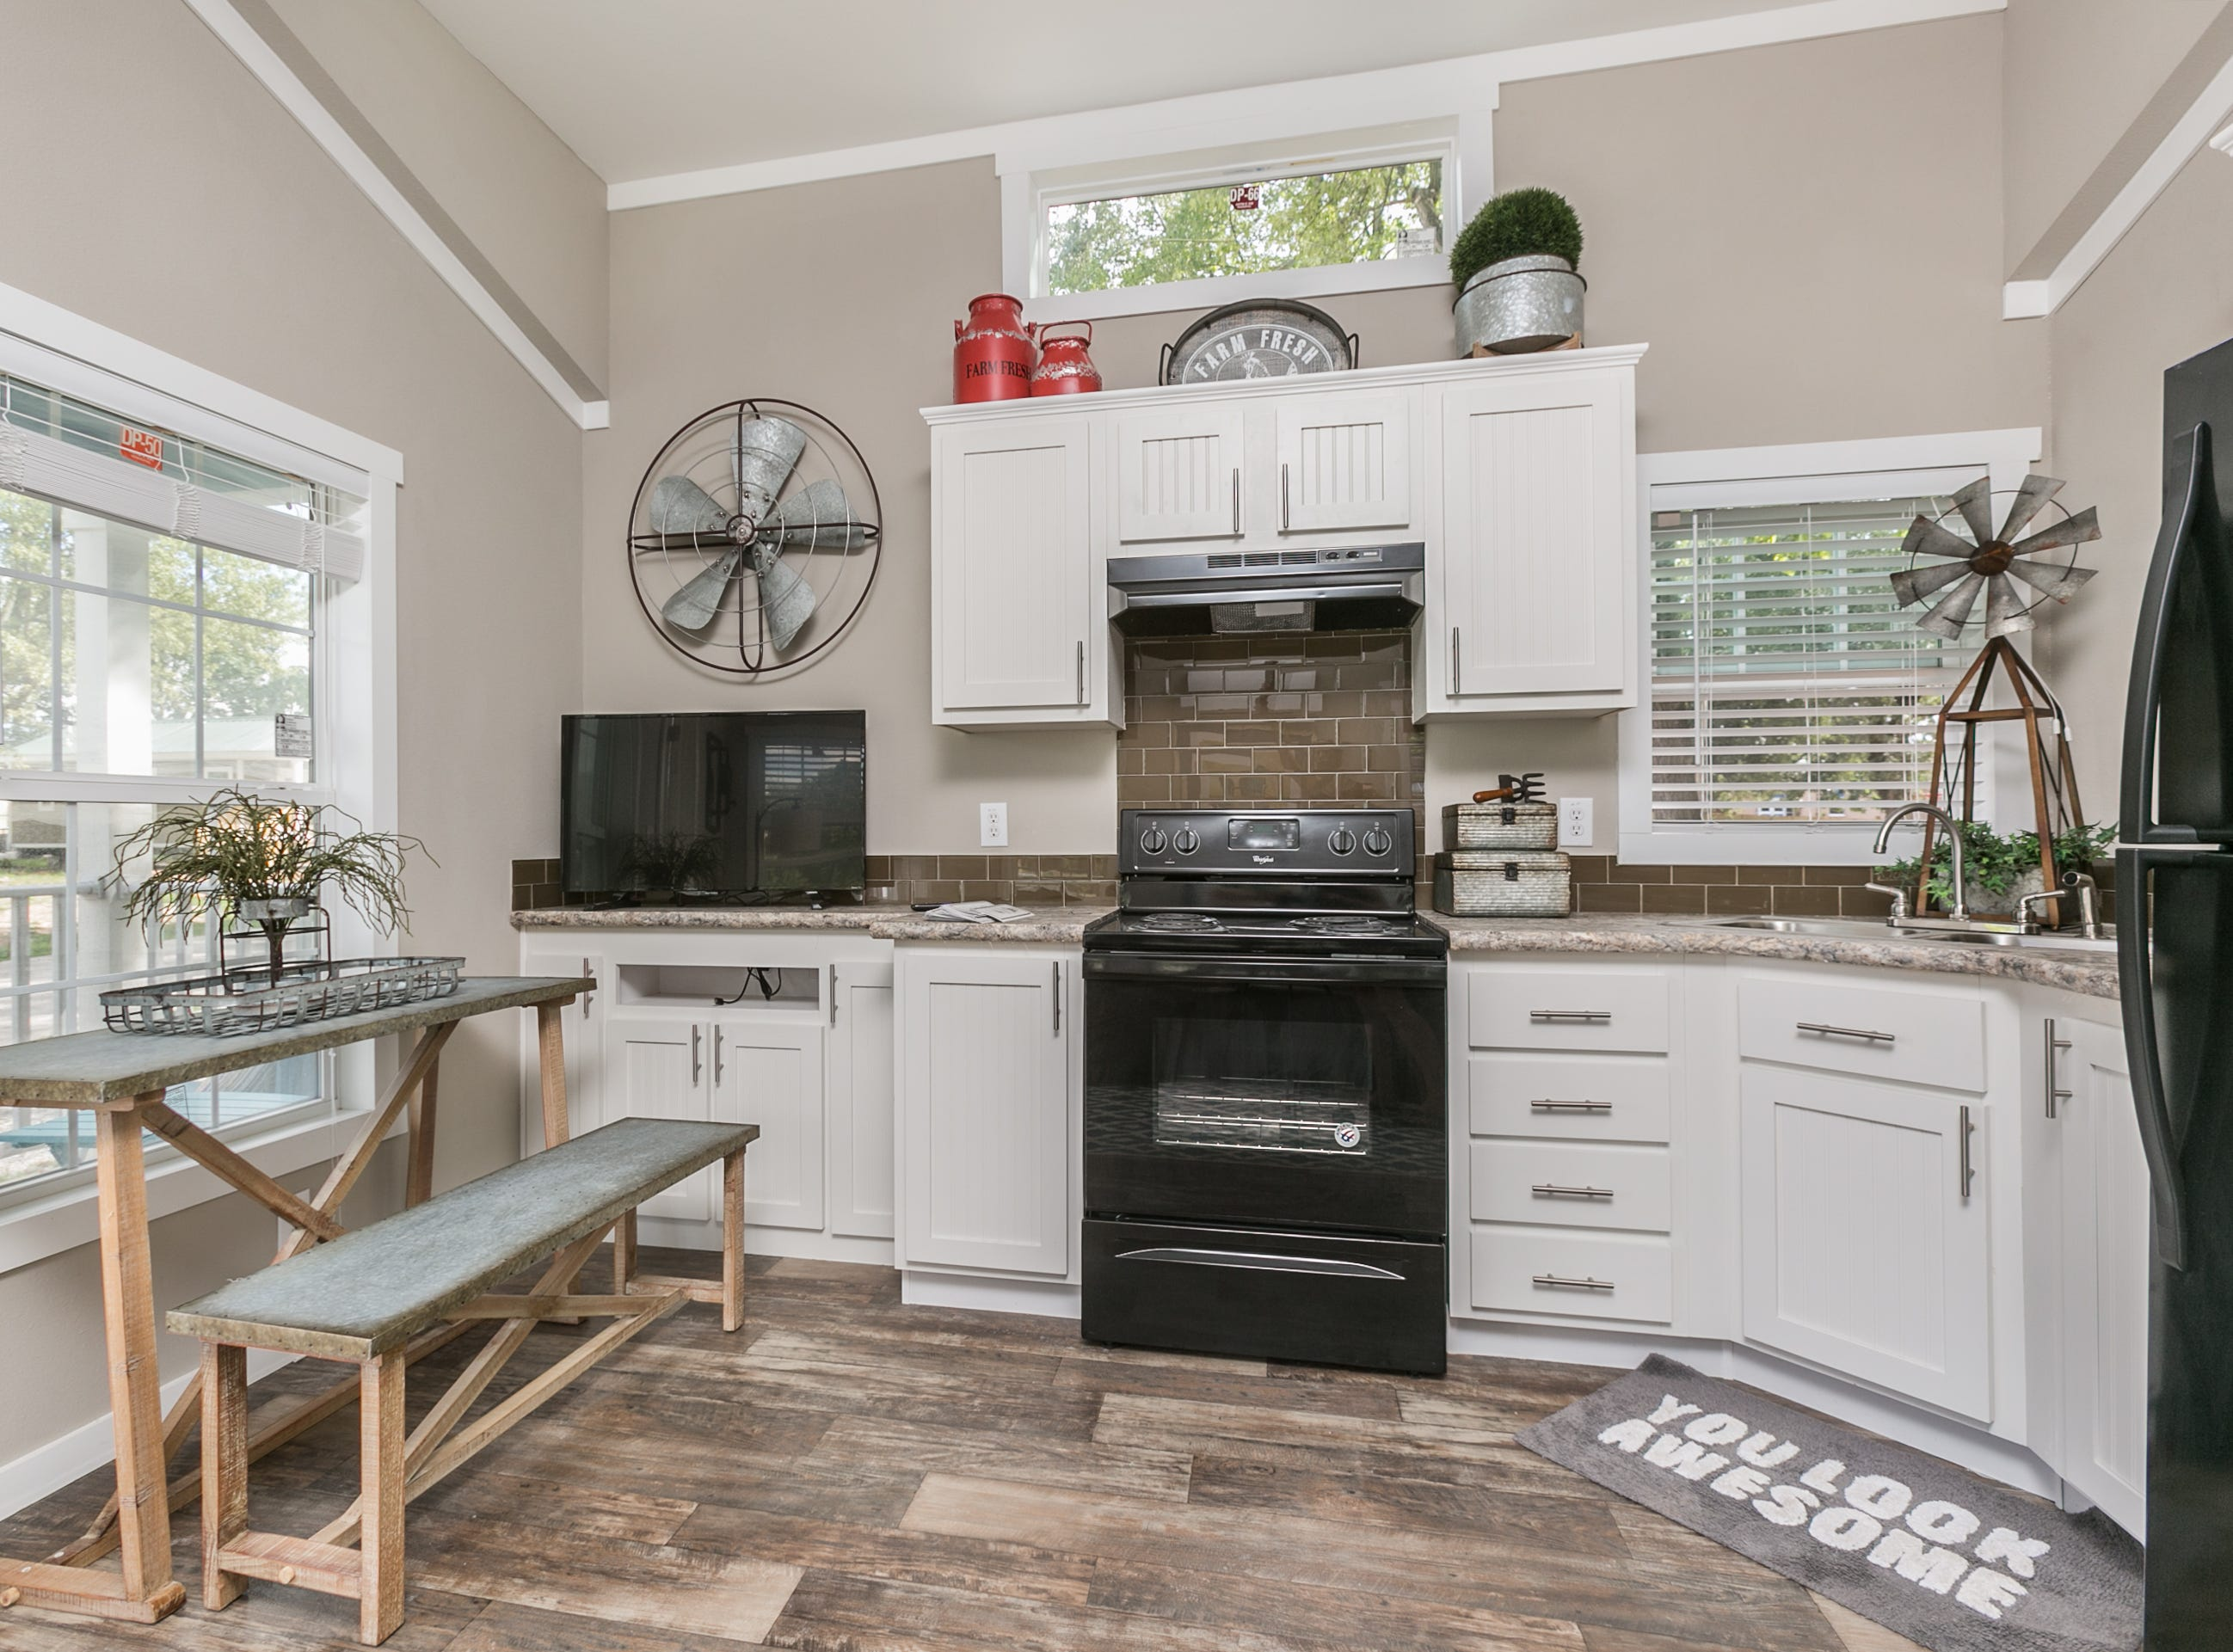 The living area features a kitchen with full-size appliances, a cleverly designed entertainment storage area, dining for two and a comfortable couch. Eden Village home donated by Mike and Mary Walker taken on September 4th, 2018.